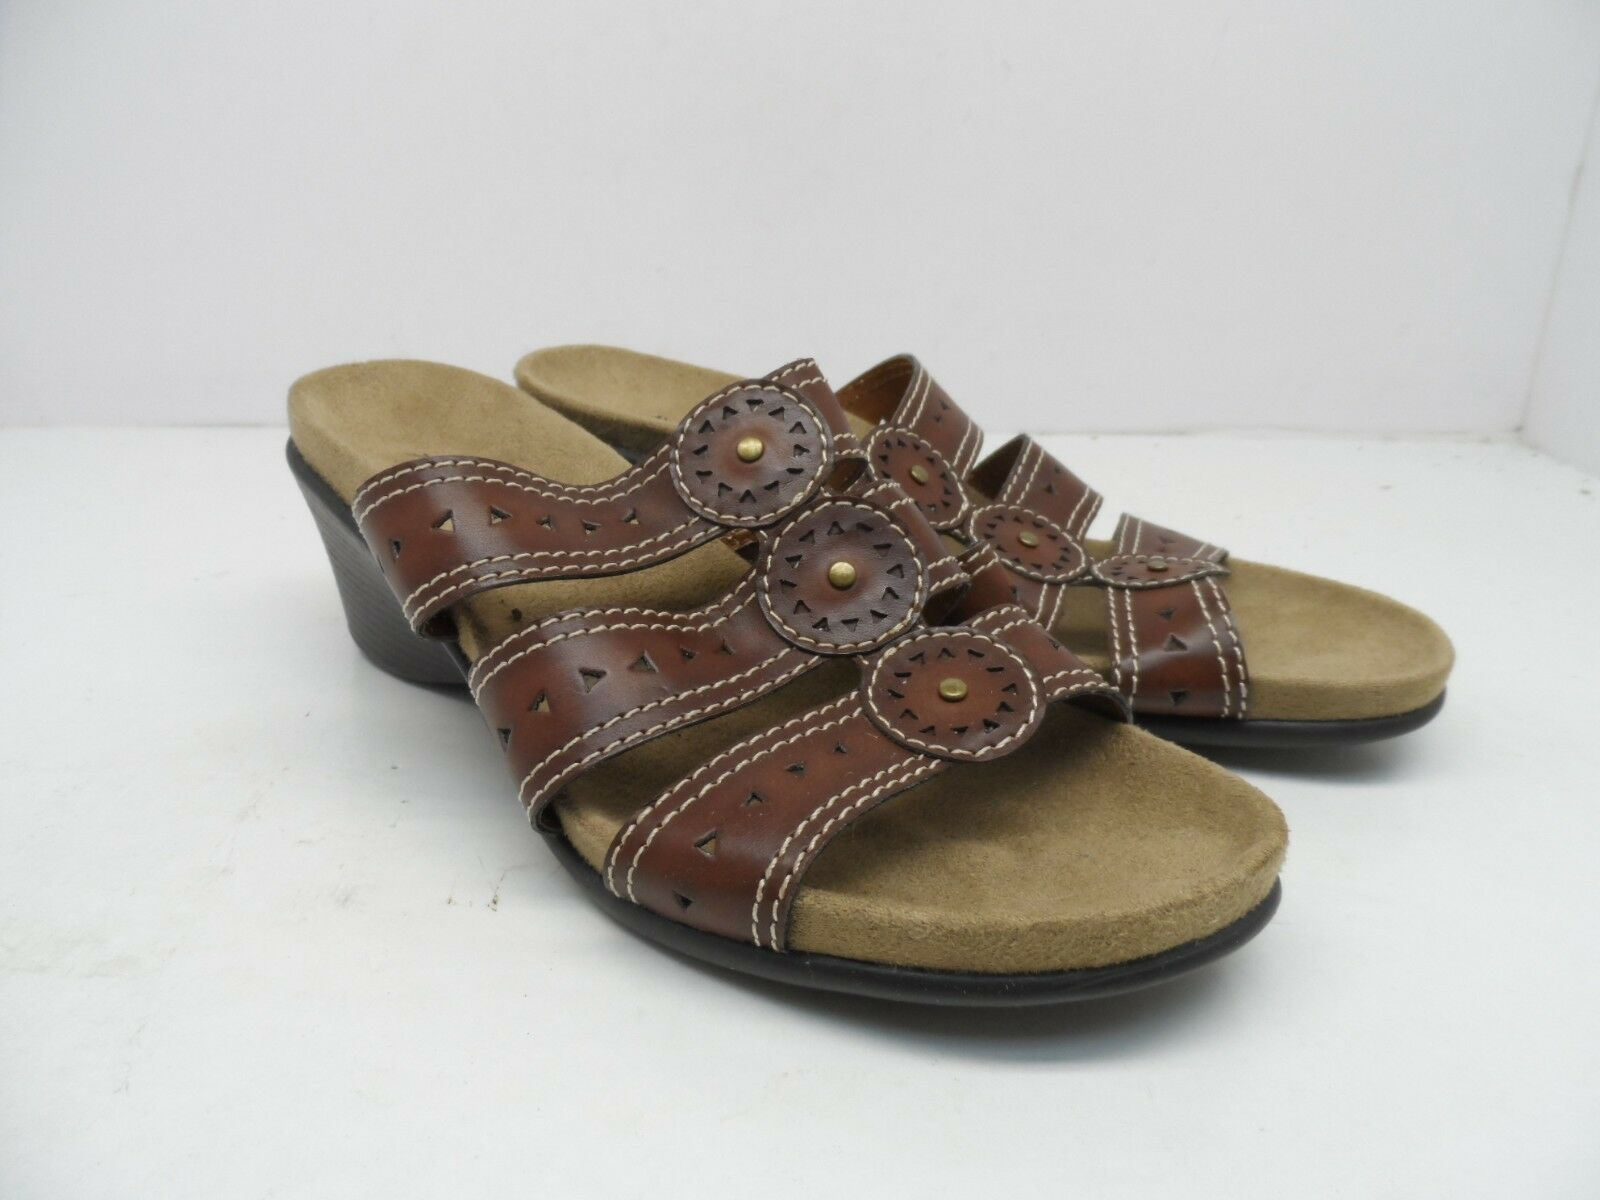 Axxiom Women's Amber 6M Wedge Sandal Brown Size 6M Amber 12721d